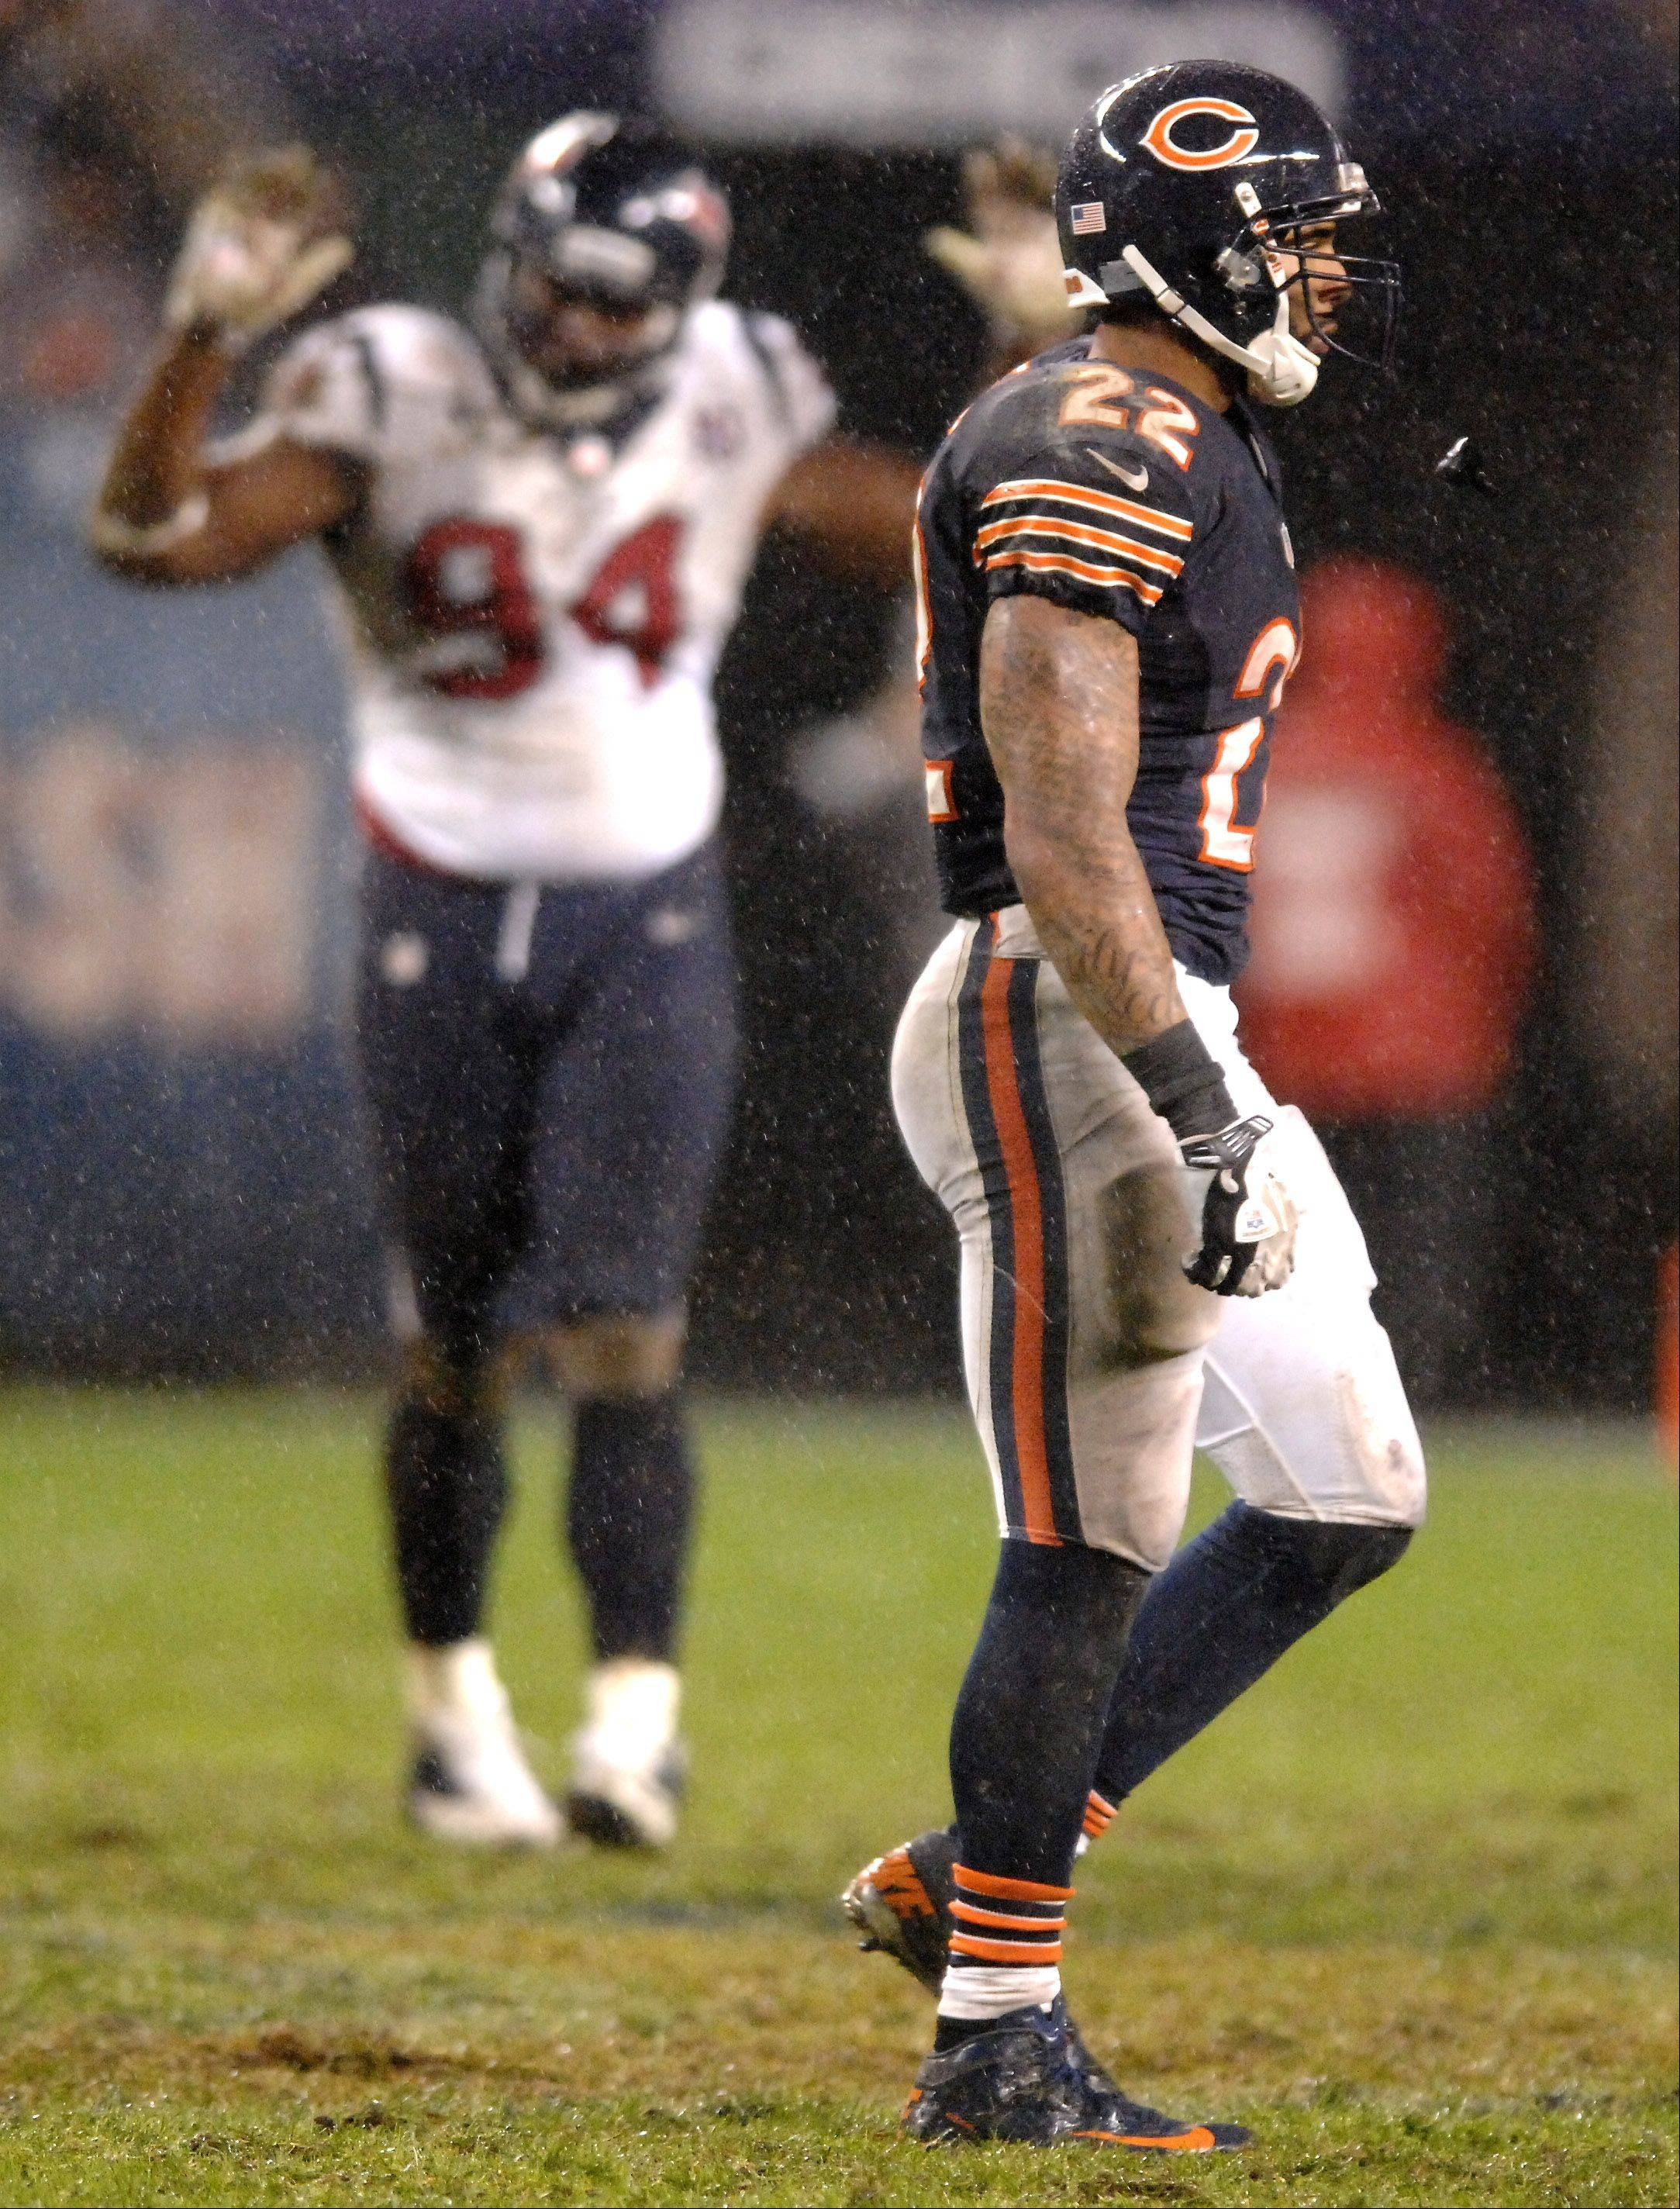 Running back Matt Forte walks off the field after the Bears failed to convert on fourth down on their final possession during the loss to the Texans earlier this month.